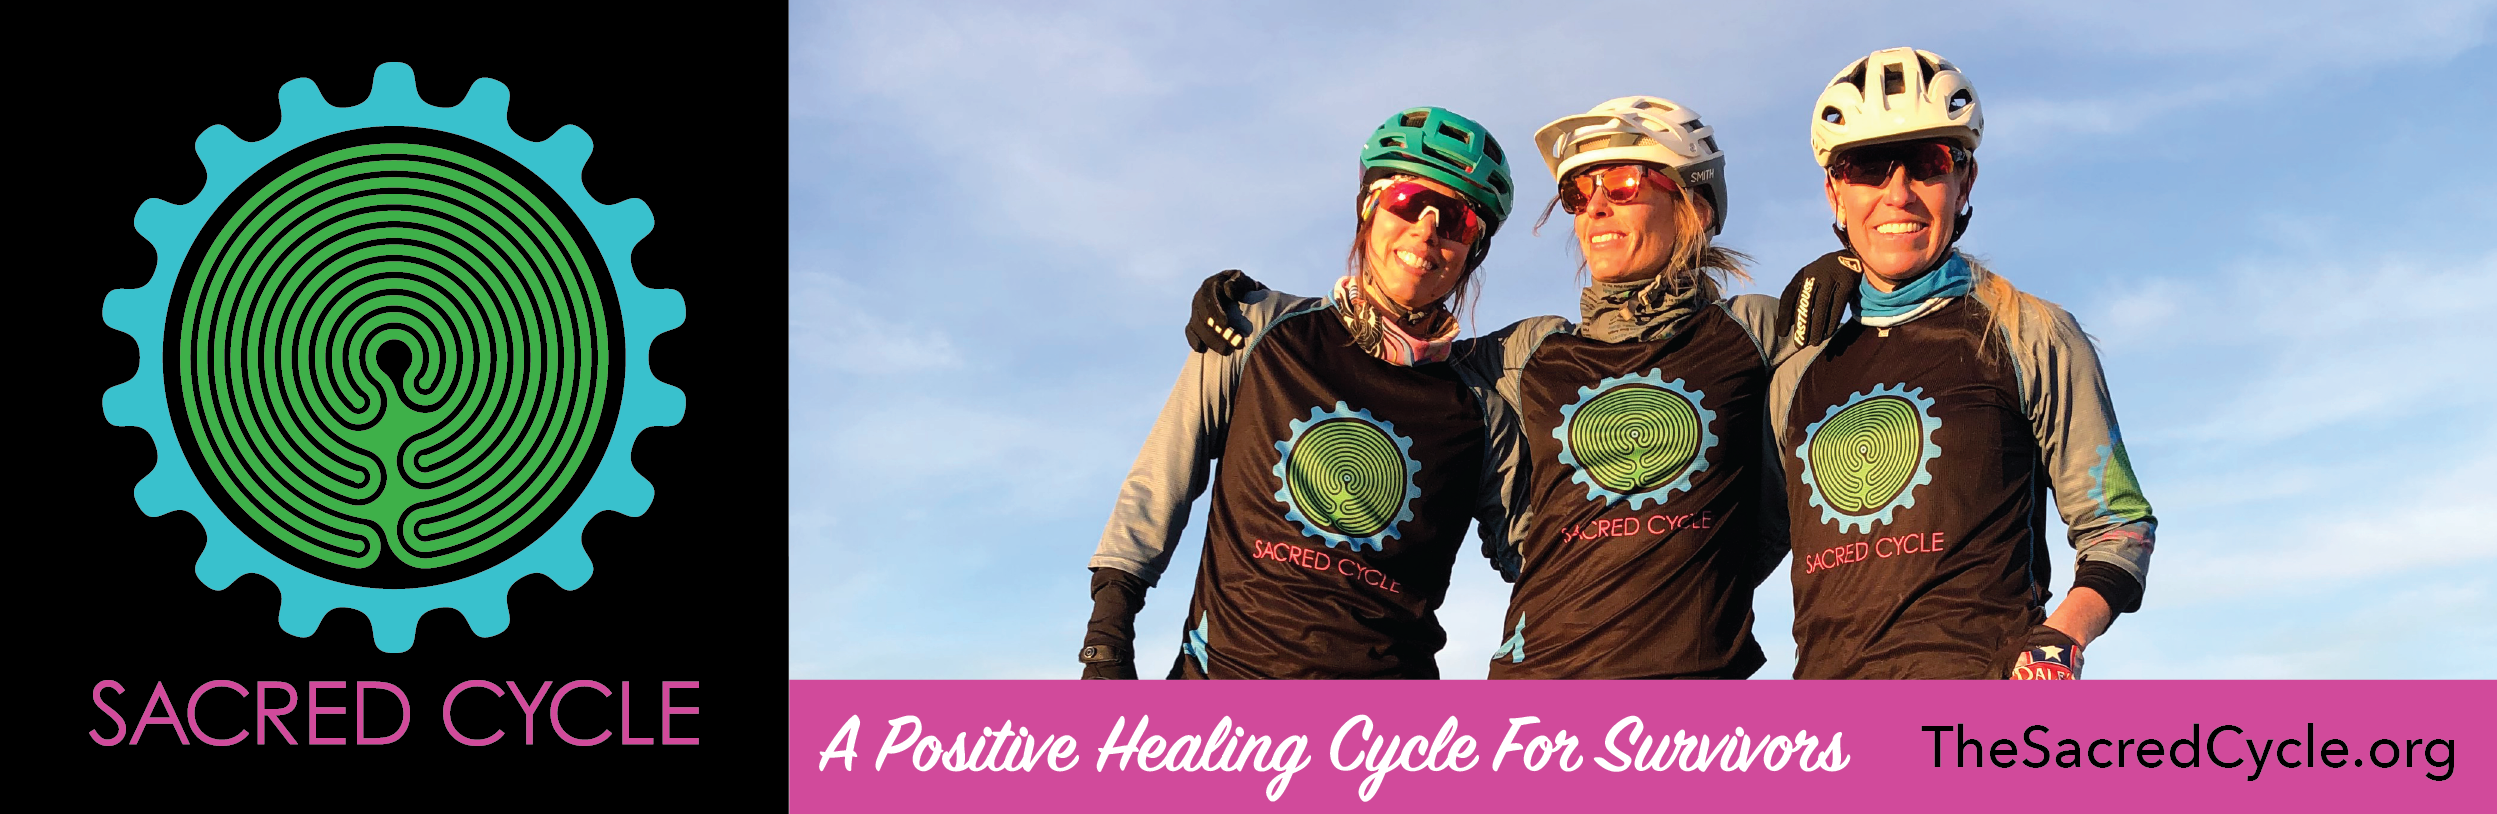 Sacred Cycle Pedal Report Header